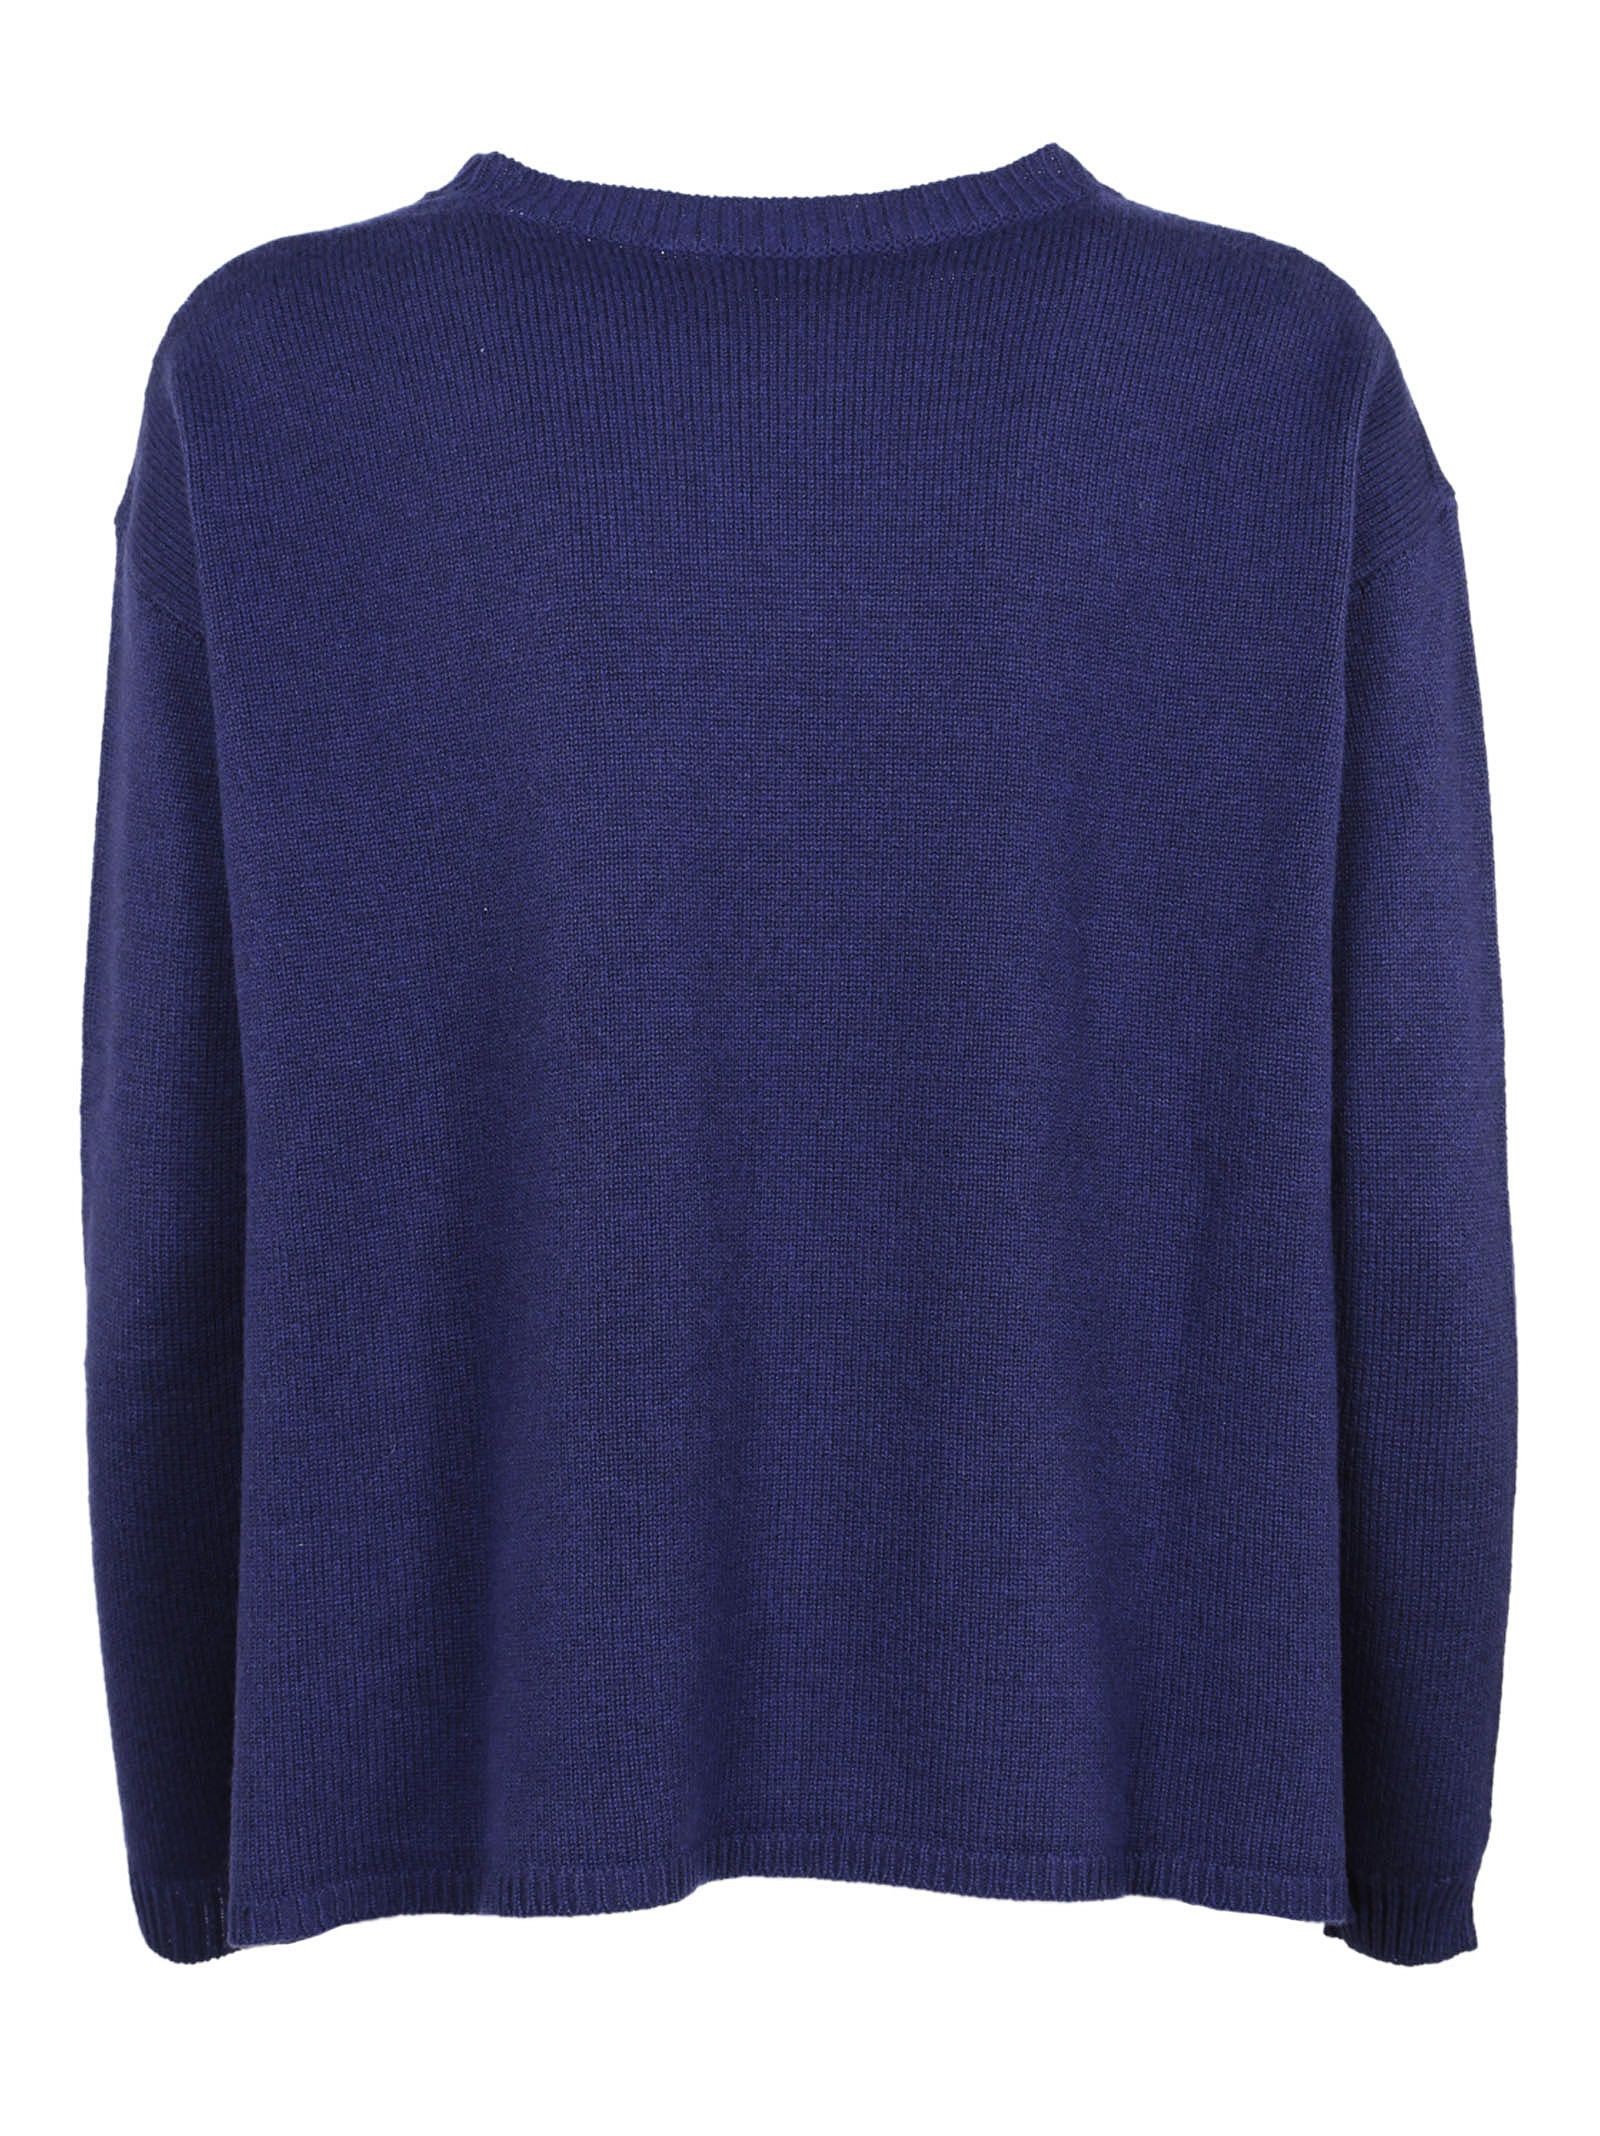 Peserico - Peserico Cable Knit Sweater - Blue, Women's Sweaters ...